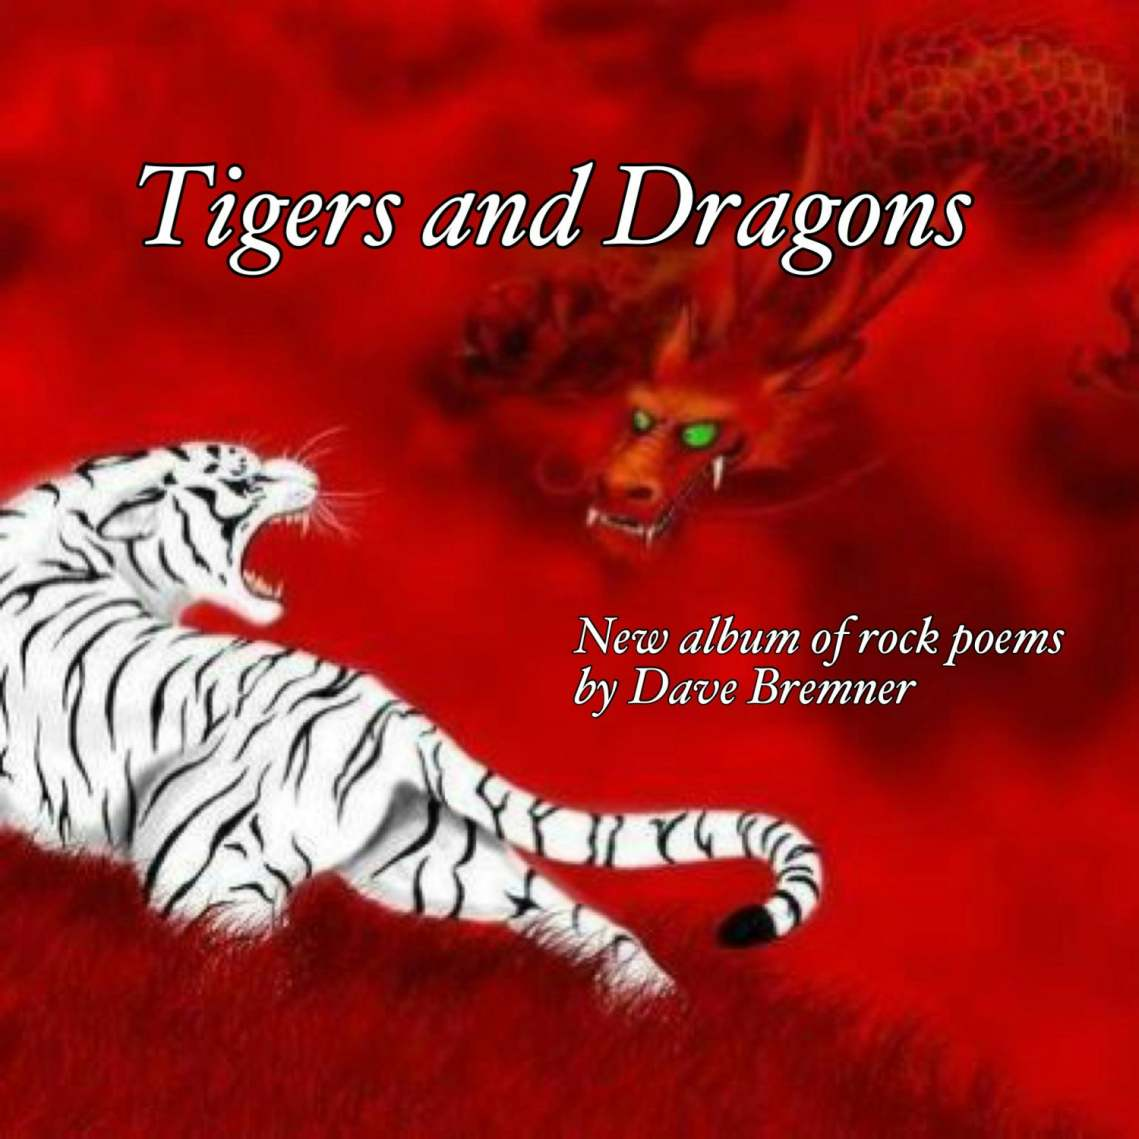 Dave Bremner - Tigers and Dragons